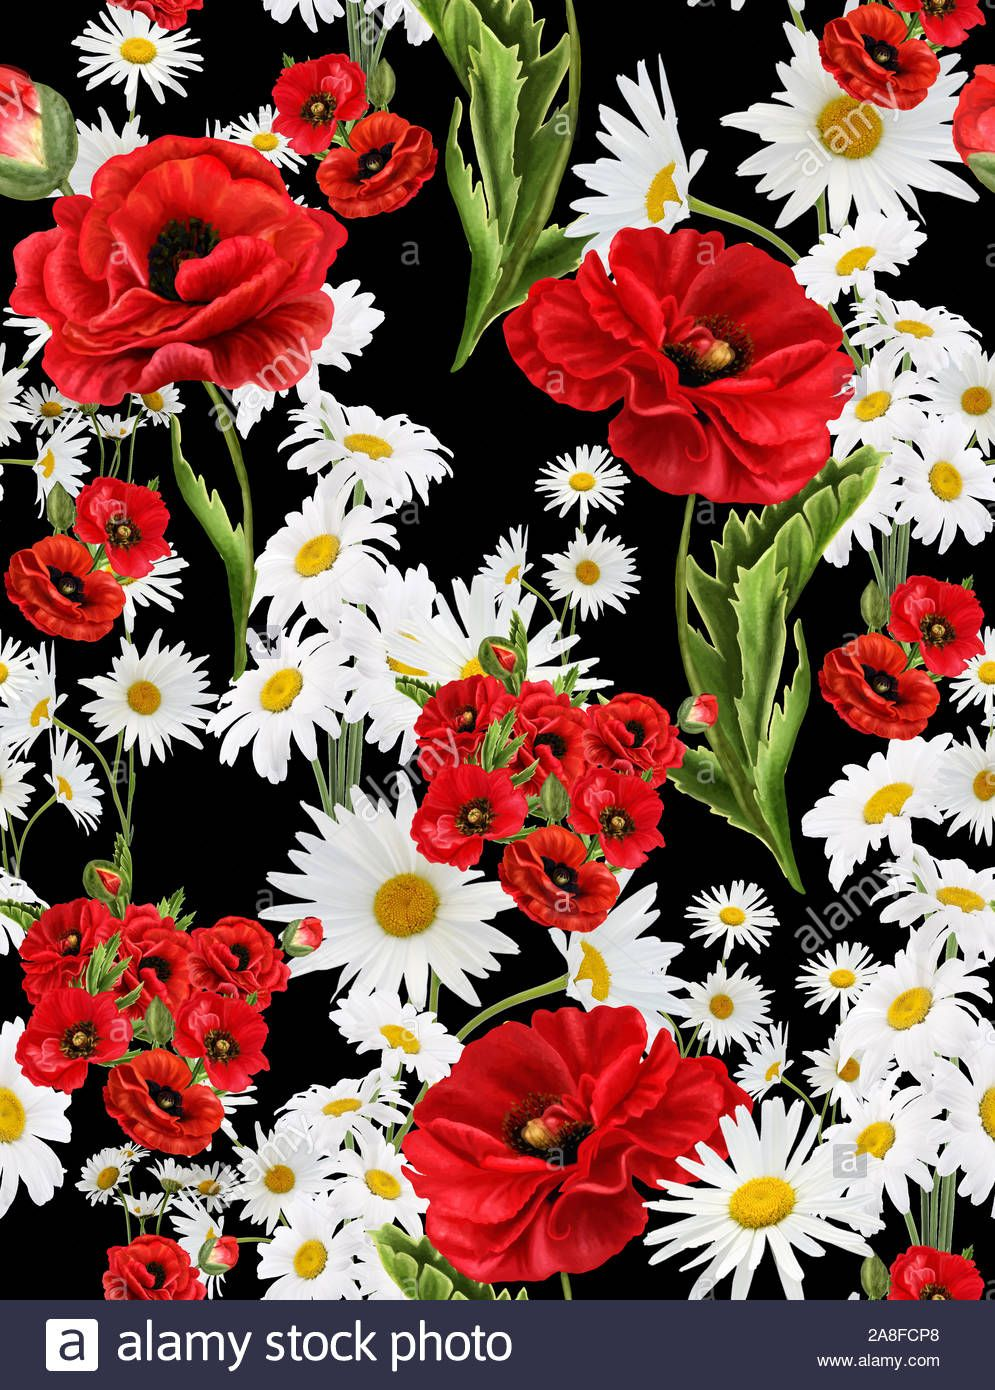 Download this stock image Seamless floral pattern with